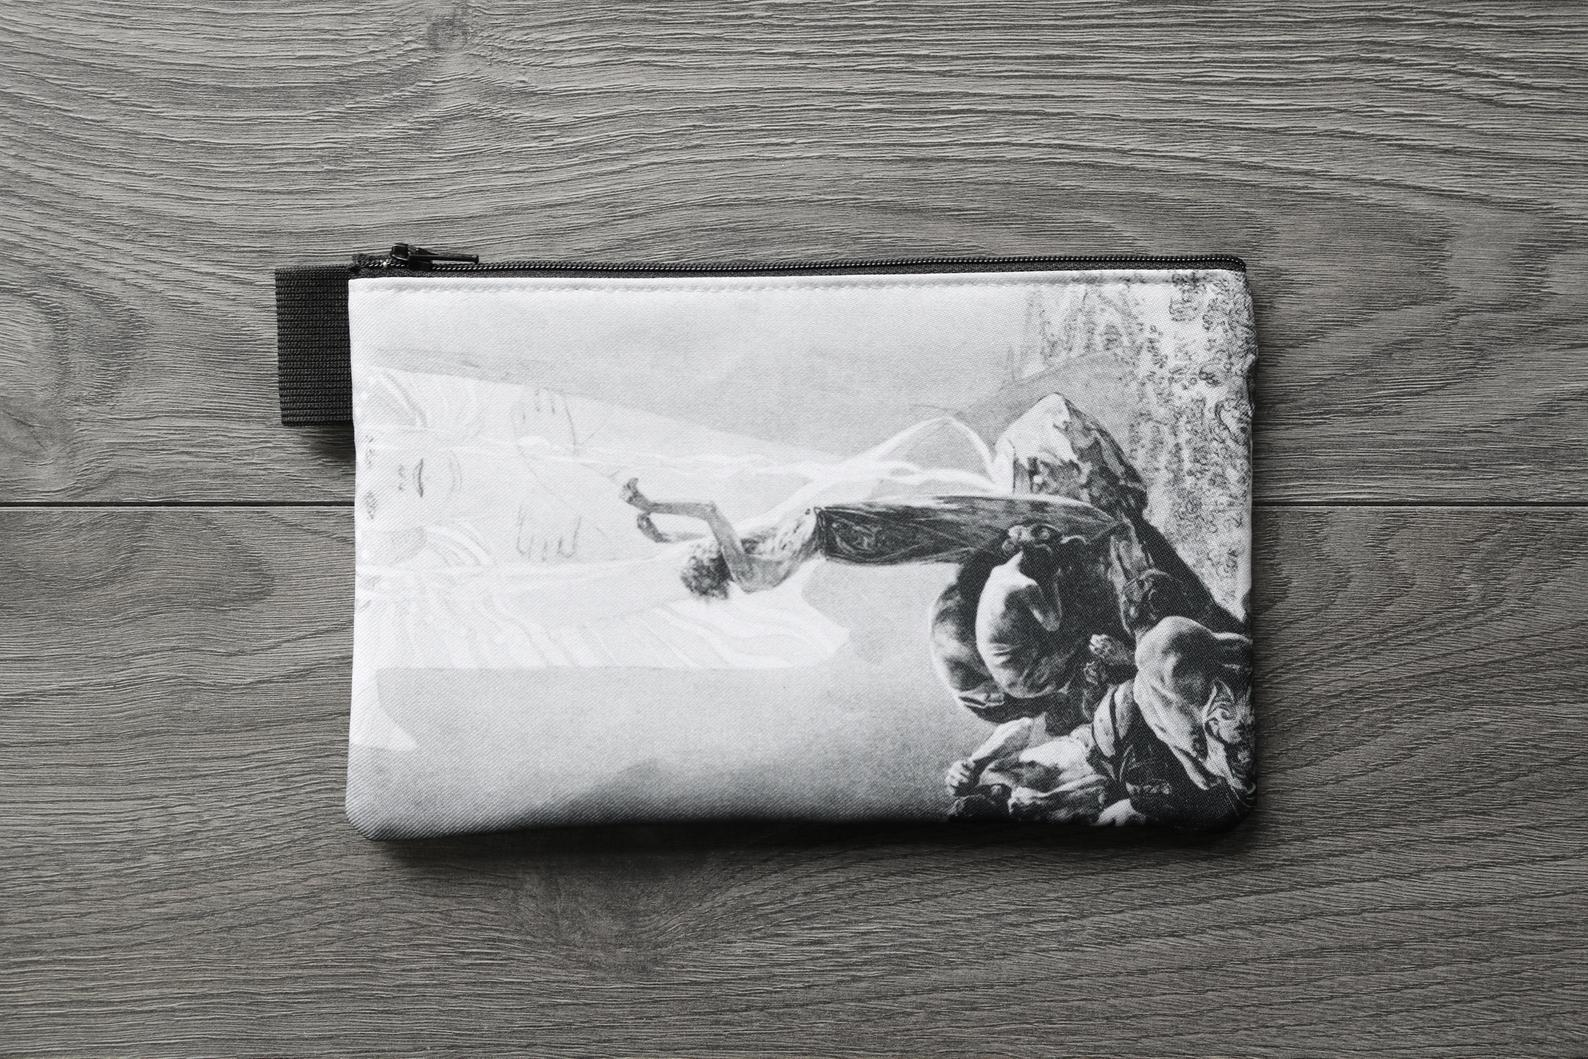 hallowed be thy name - lined twill pencil case - double sided print - le pater // the Lord's Prayer alphonse mucha, 1899